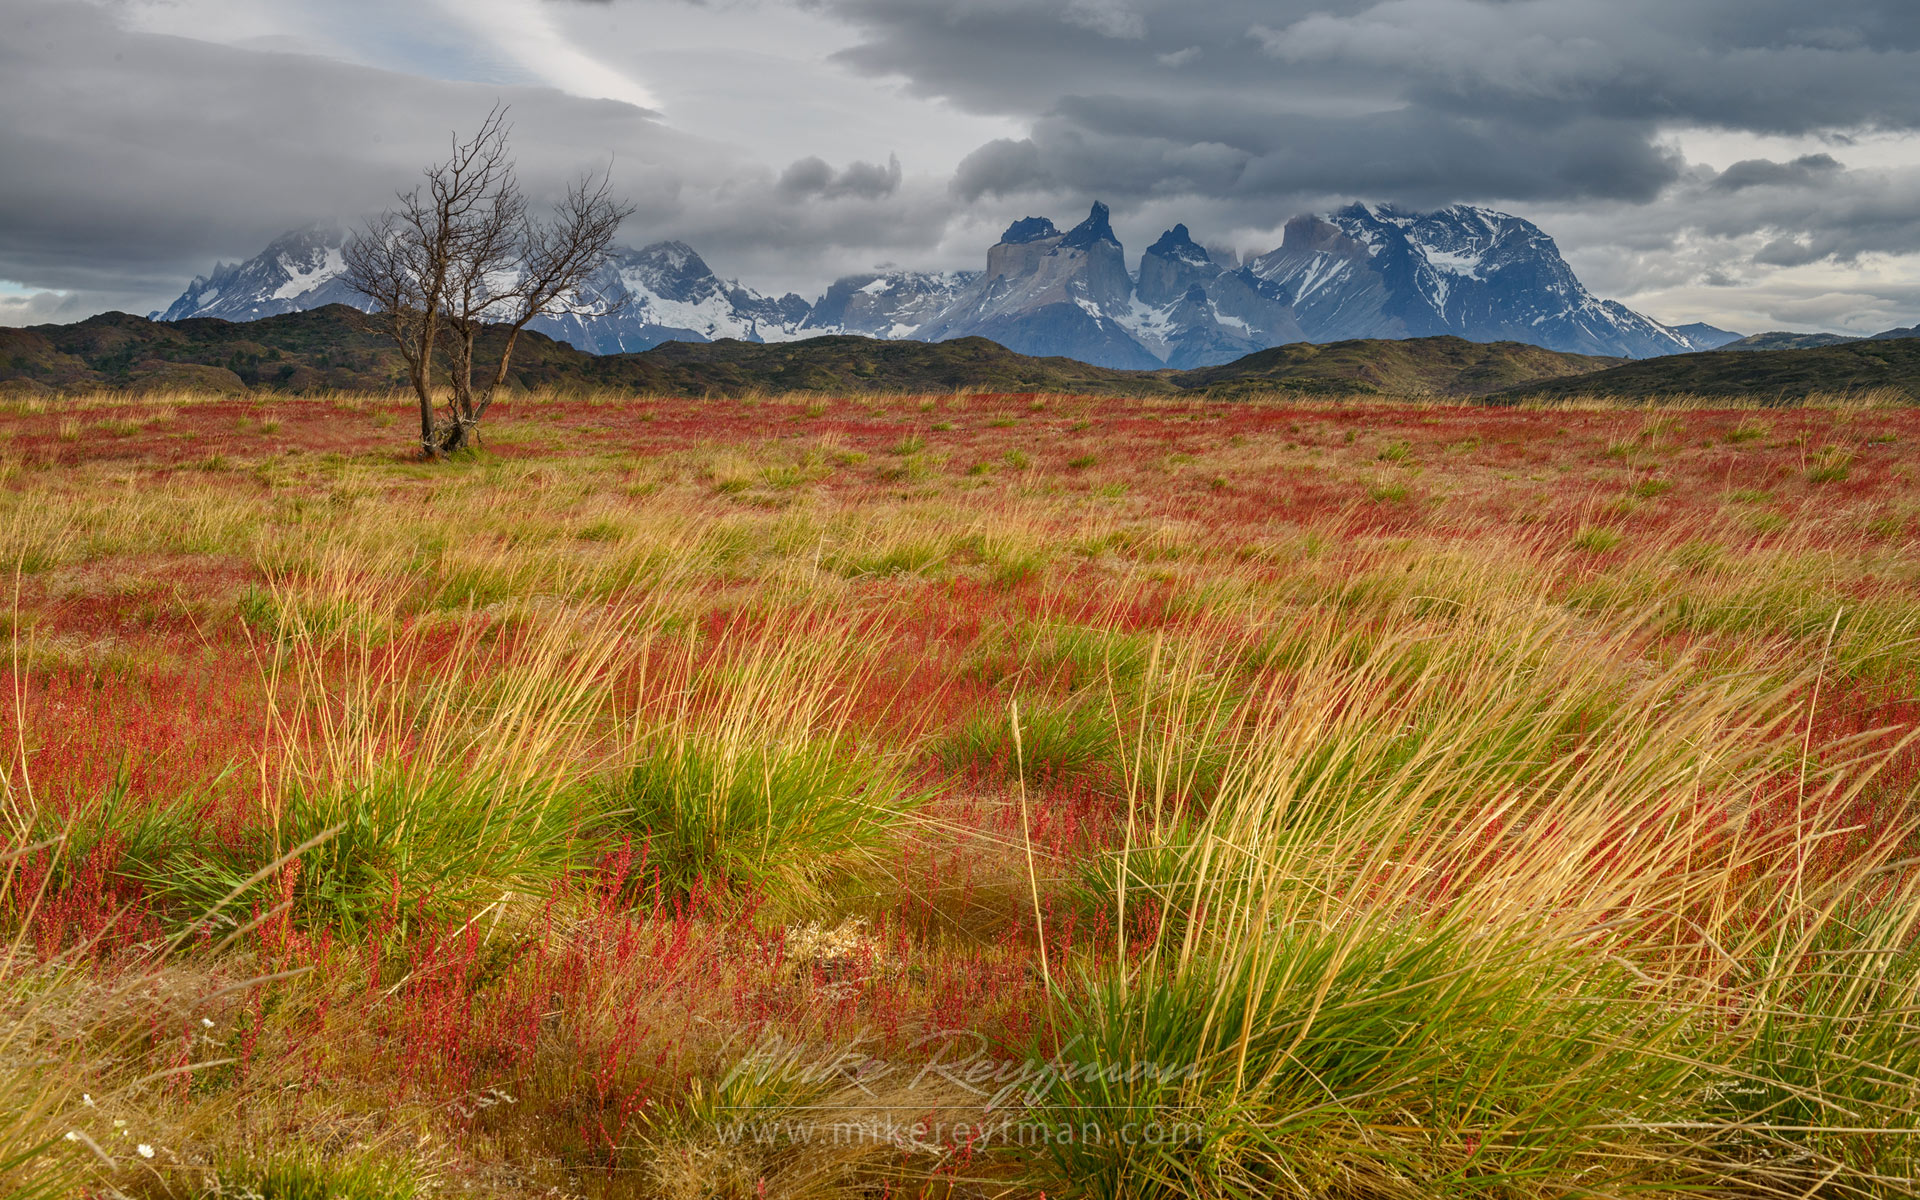 Bella Patagonia. Red Sorrel covered Patagonian Steppes with lonely Antarctic Beech tree and Cordillera del Paine on the background. Torres del Paine National Park, Patagonia, Chile. - Torres-Del-Paine-National-Park-Patagonia-Chile - Mike Reyfman Photography